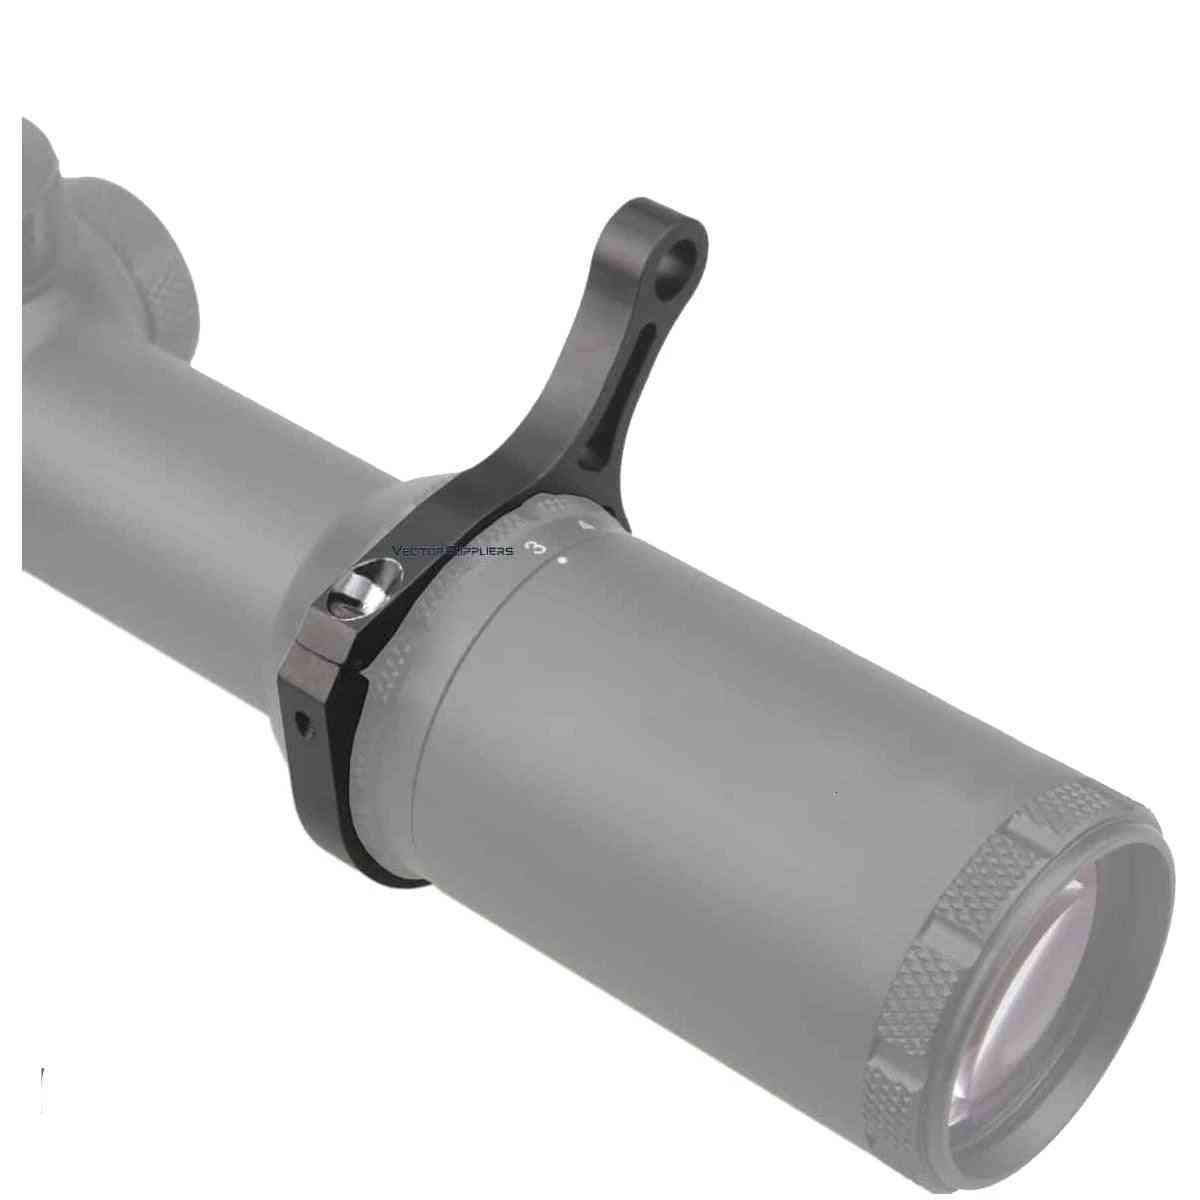 Riflescope Throw Lever Fit For Rifle Scope Adjustment Accessories